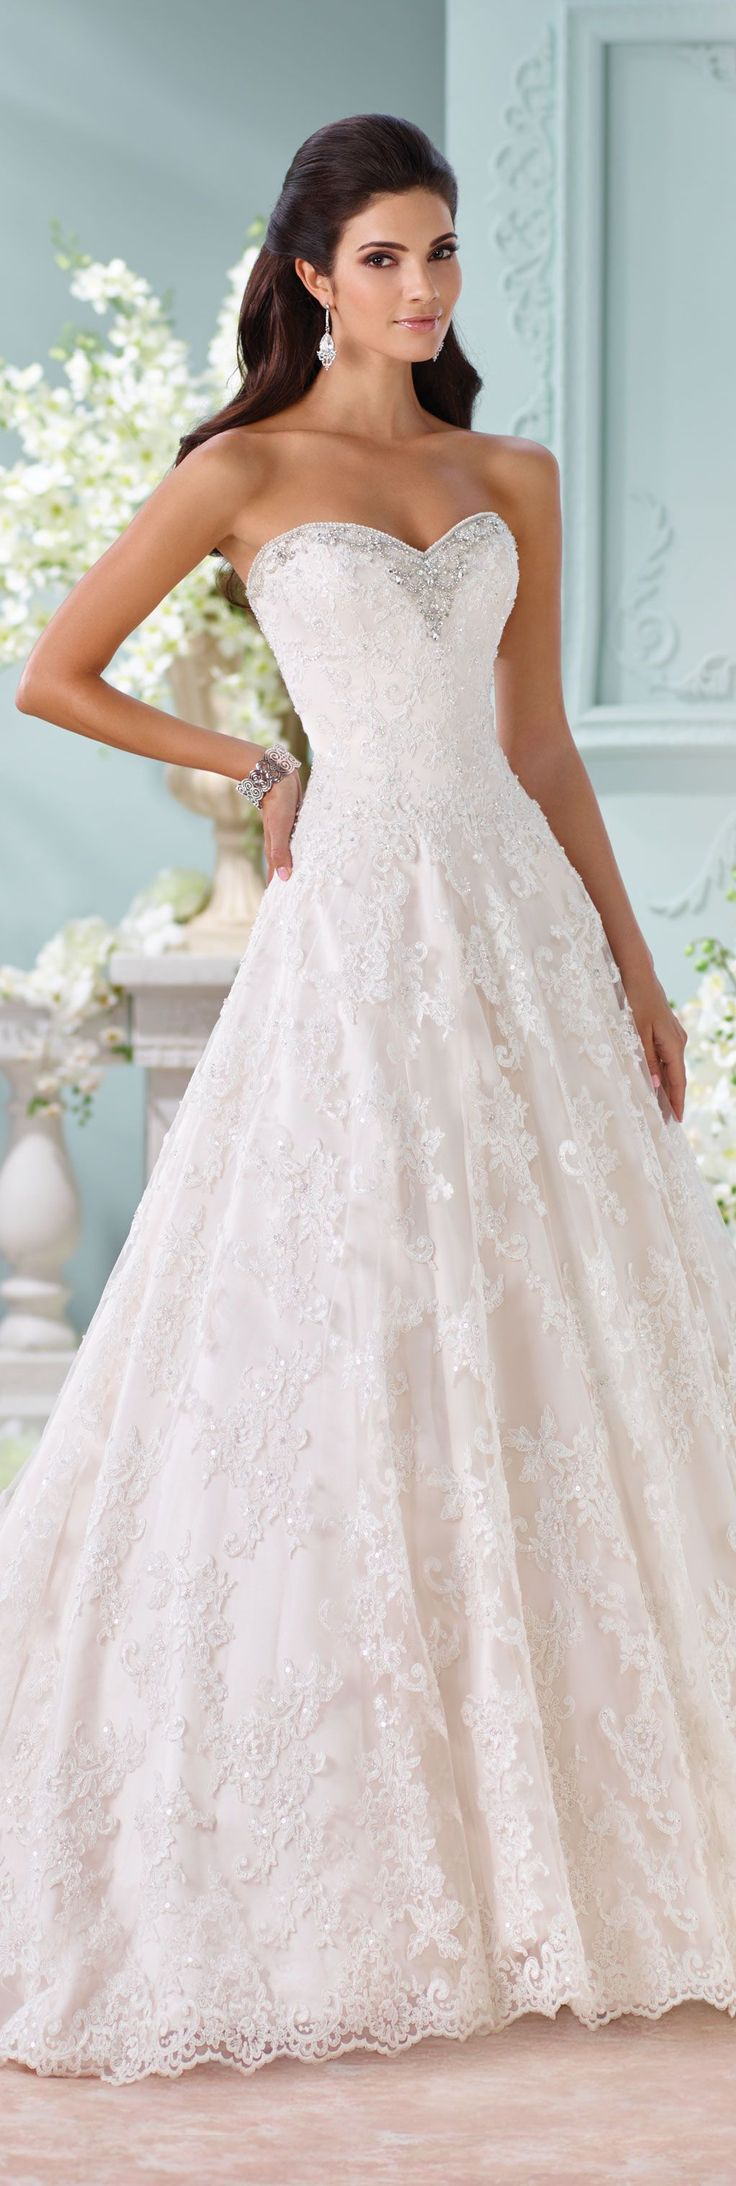 The David Tutera for Mon Cheri Spring 2016 Wedding Gown Collection – Style No. 1…